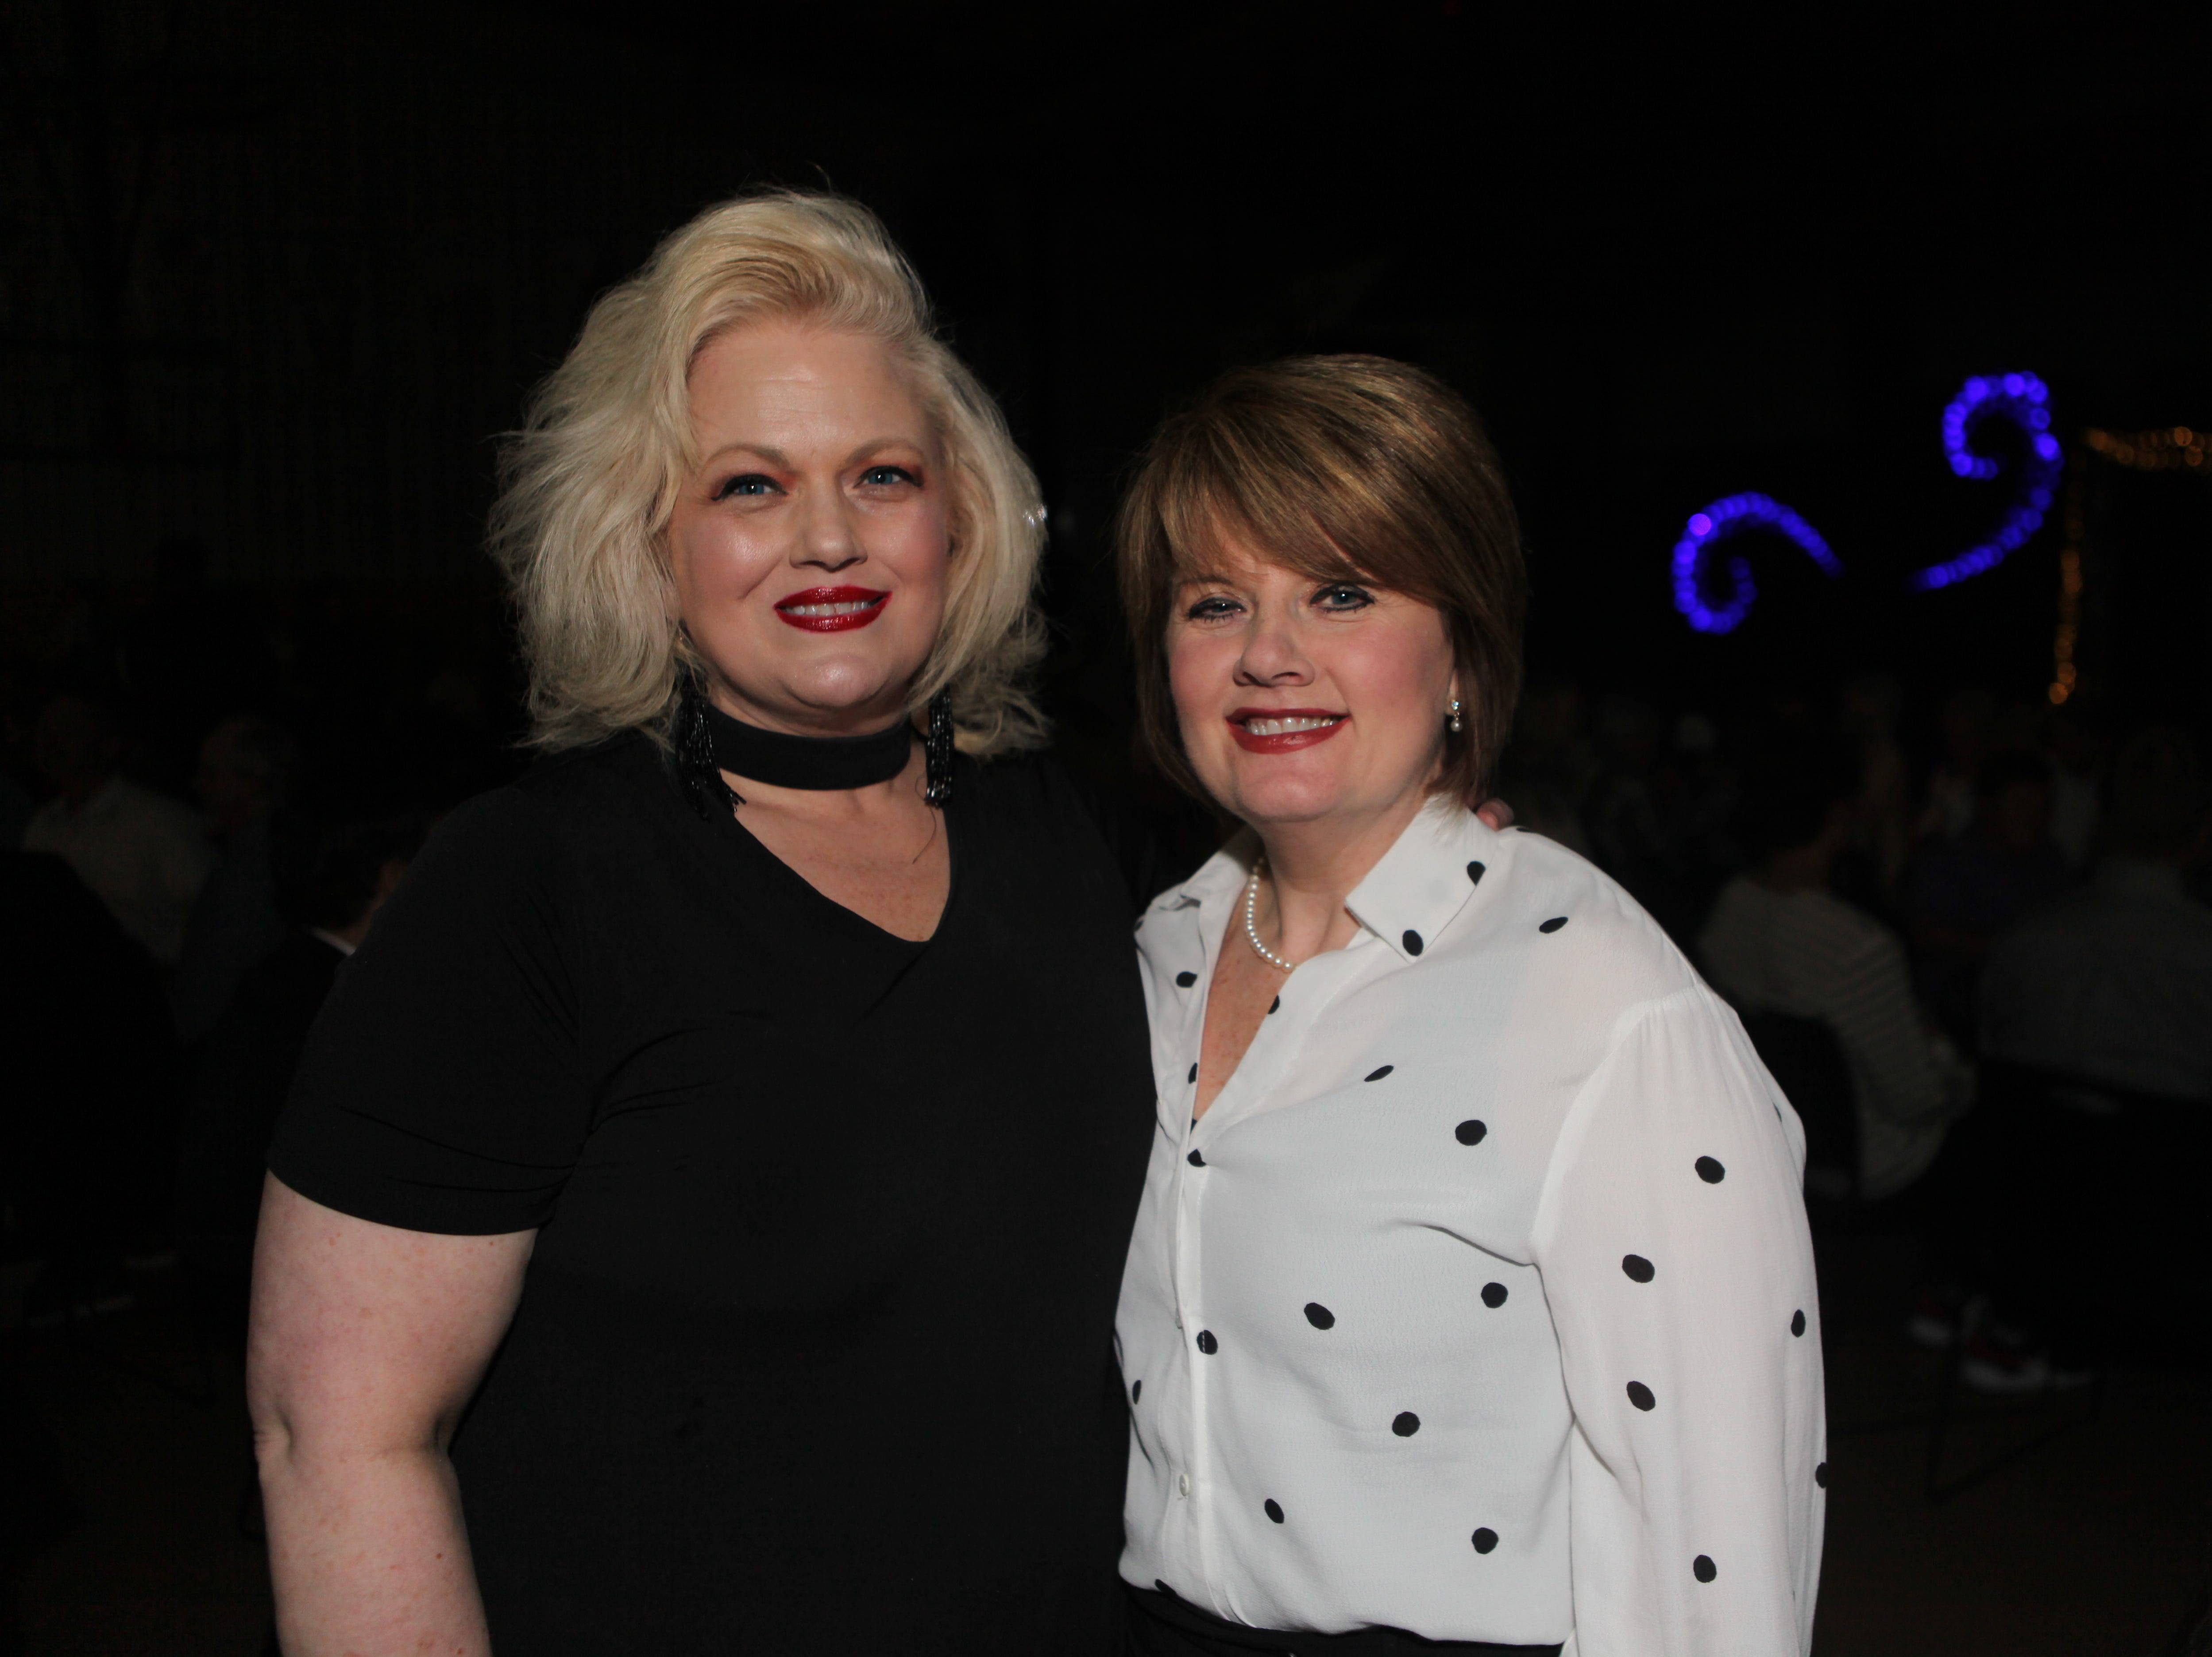 Angela Thomas and Cindy Pitts at Clarksville Academy's Steak Dinner on Saturday, April 13, 2019.